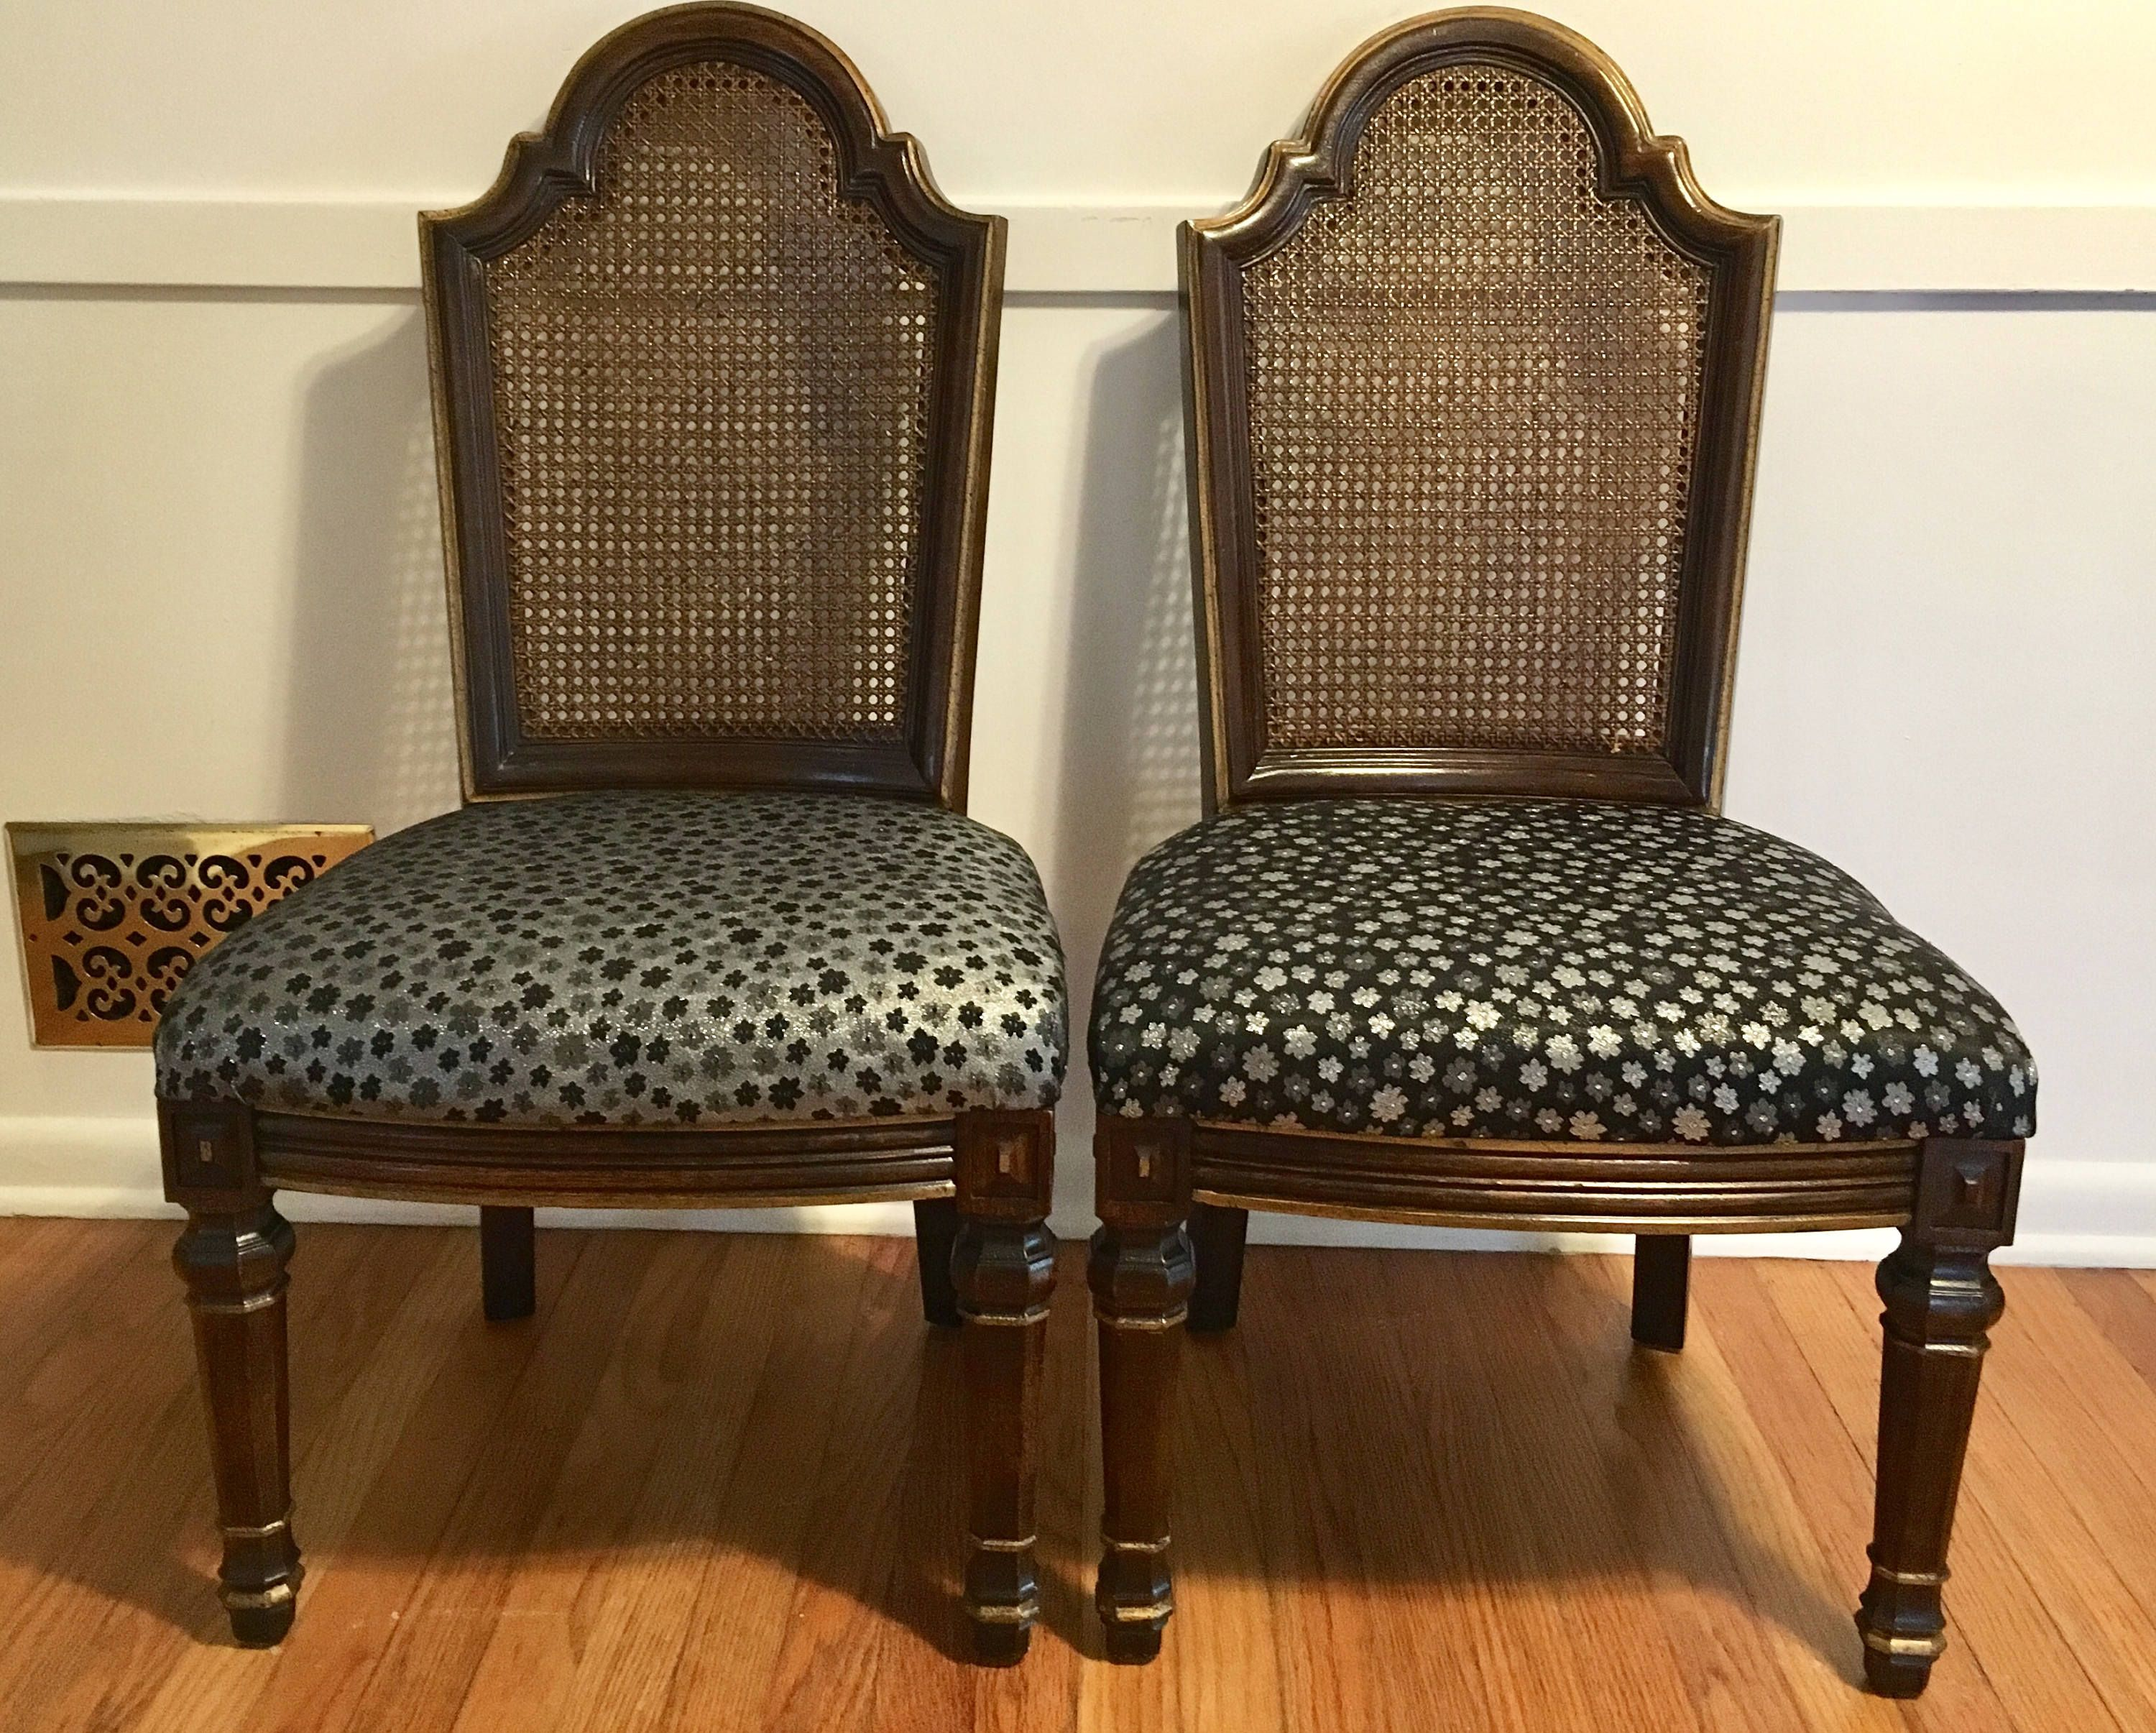 Vintage Henredon Dining Chairs Cane Dining Chairs French country chairs Farmhouse Chairs